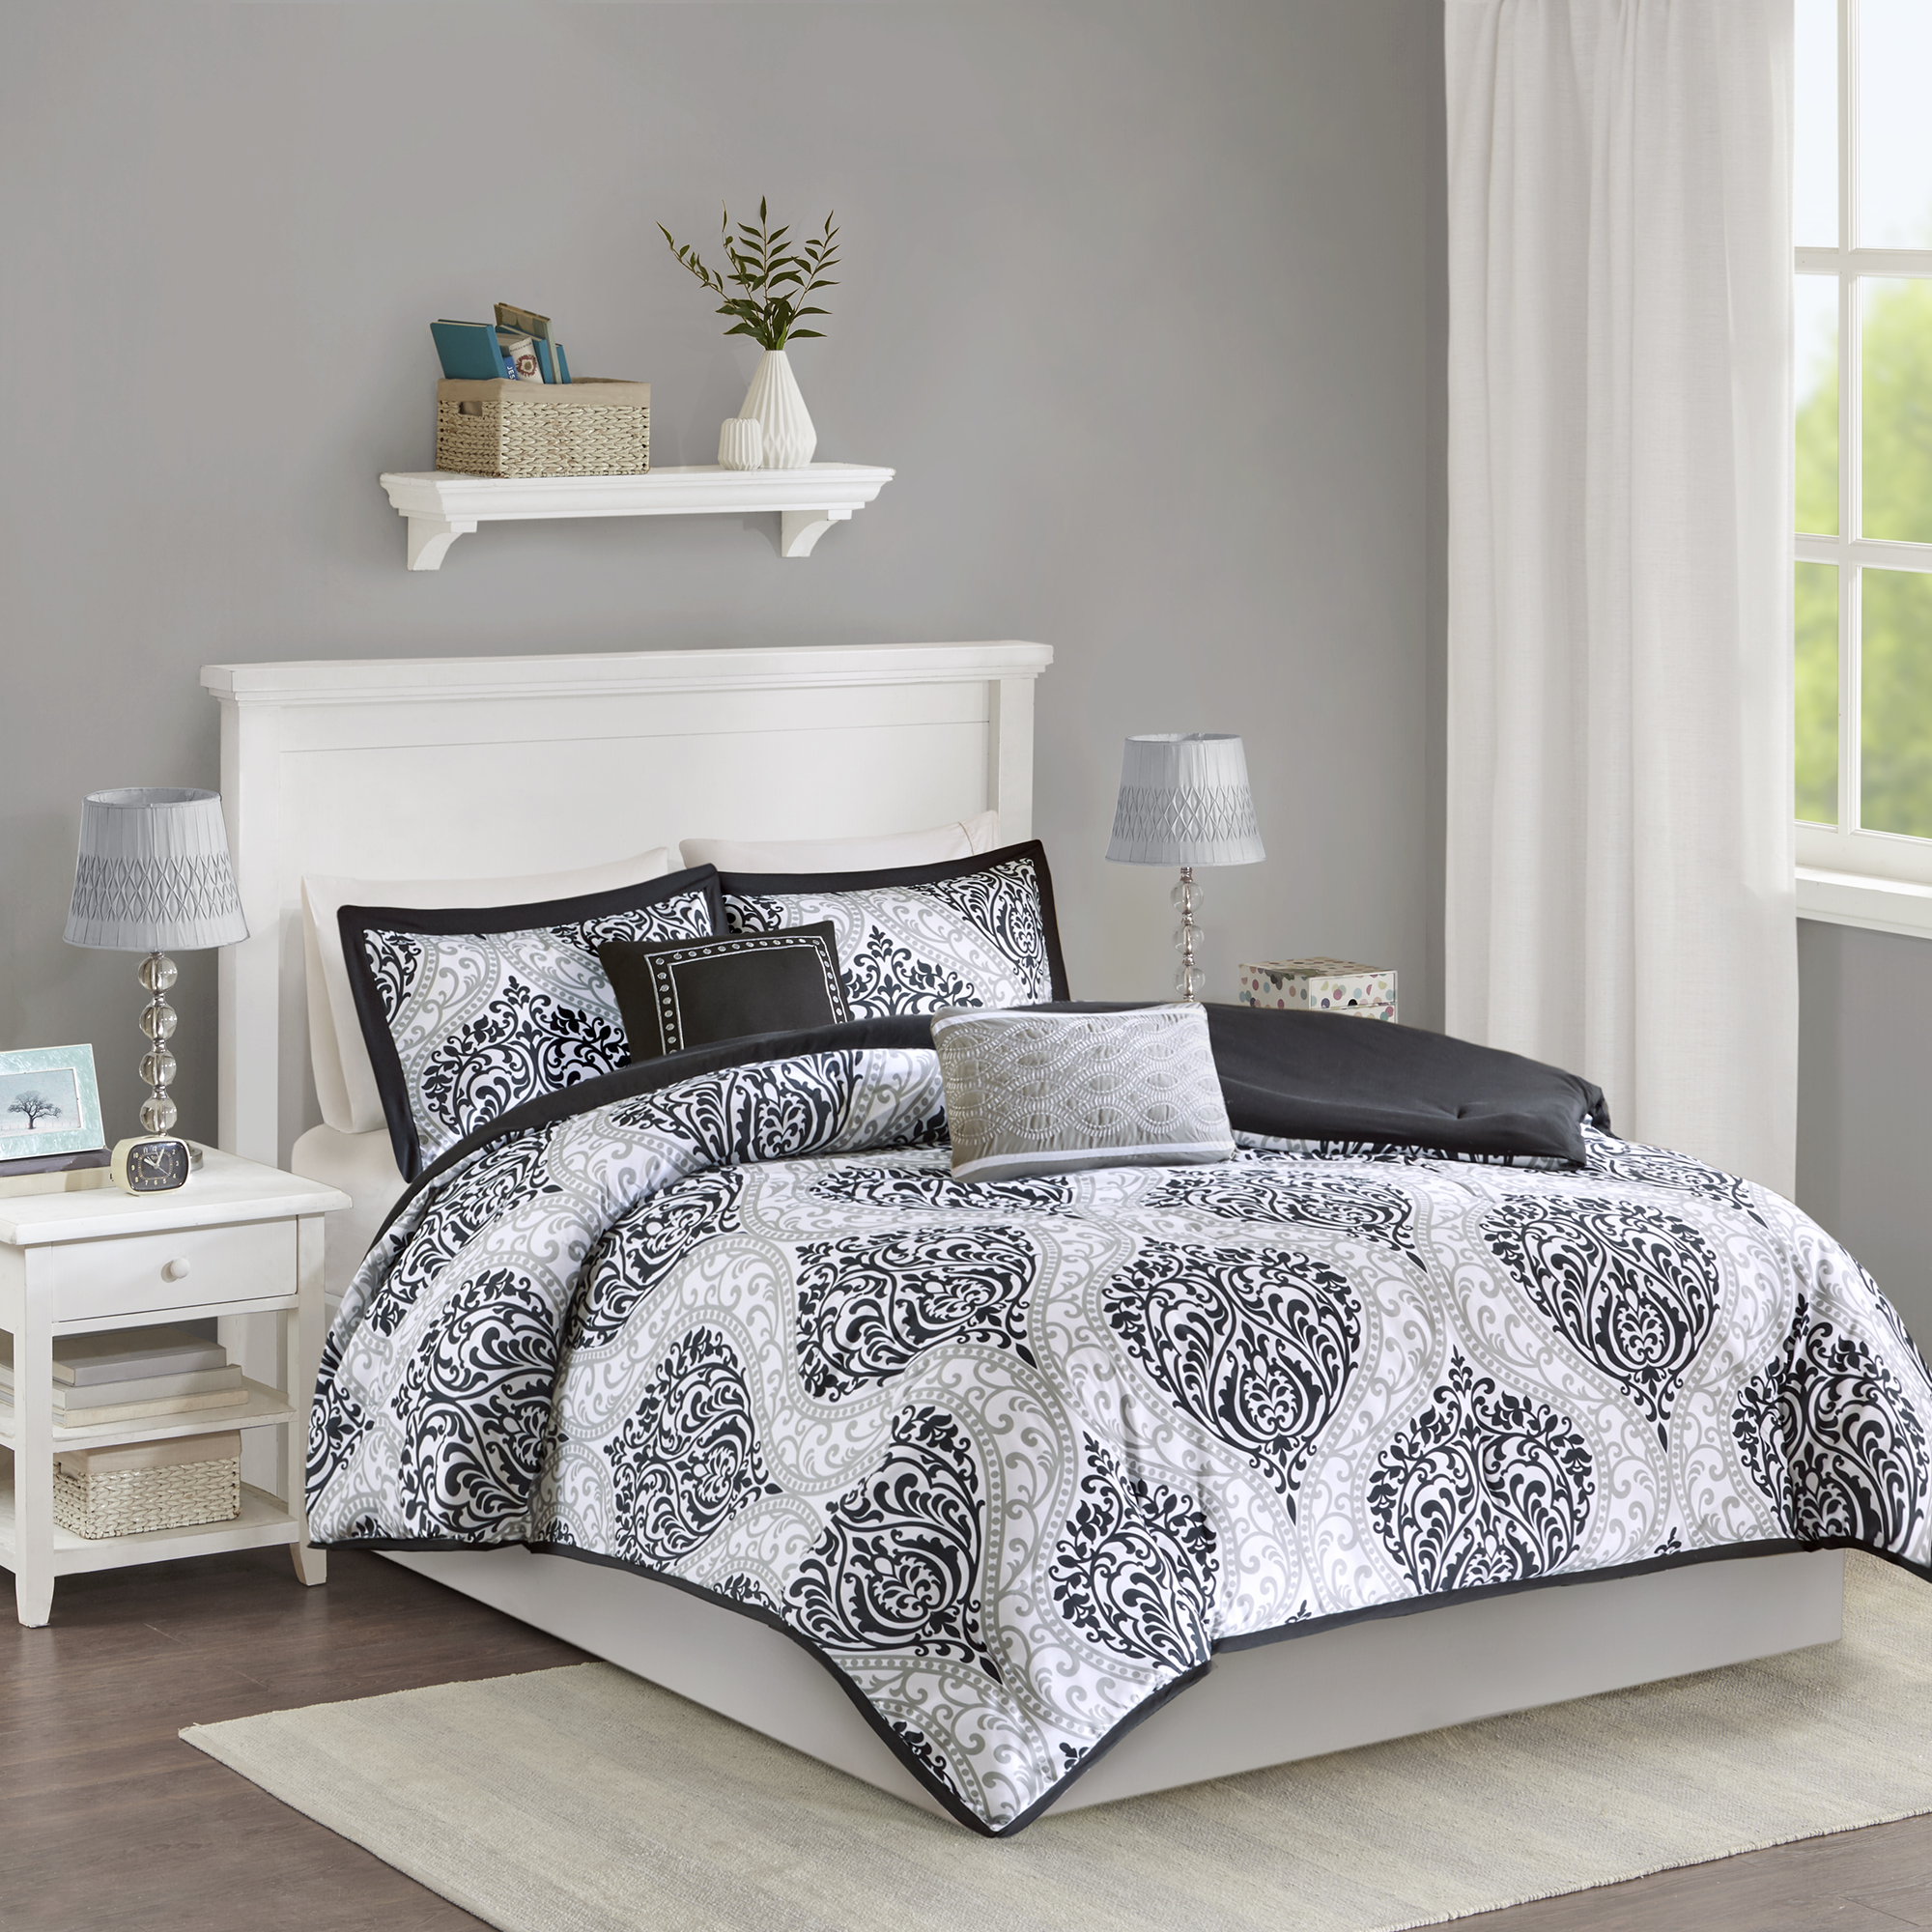 Home Essence Apartment Chelsea Ultra Soft Bedding Comforter Set